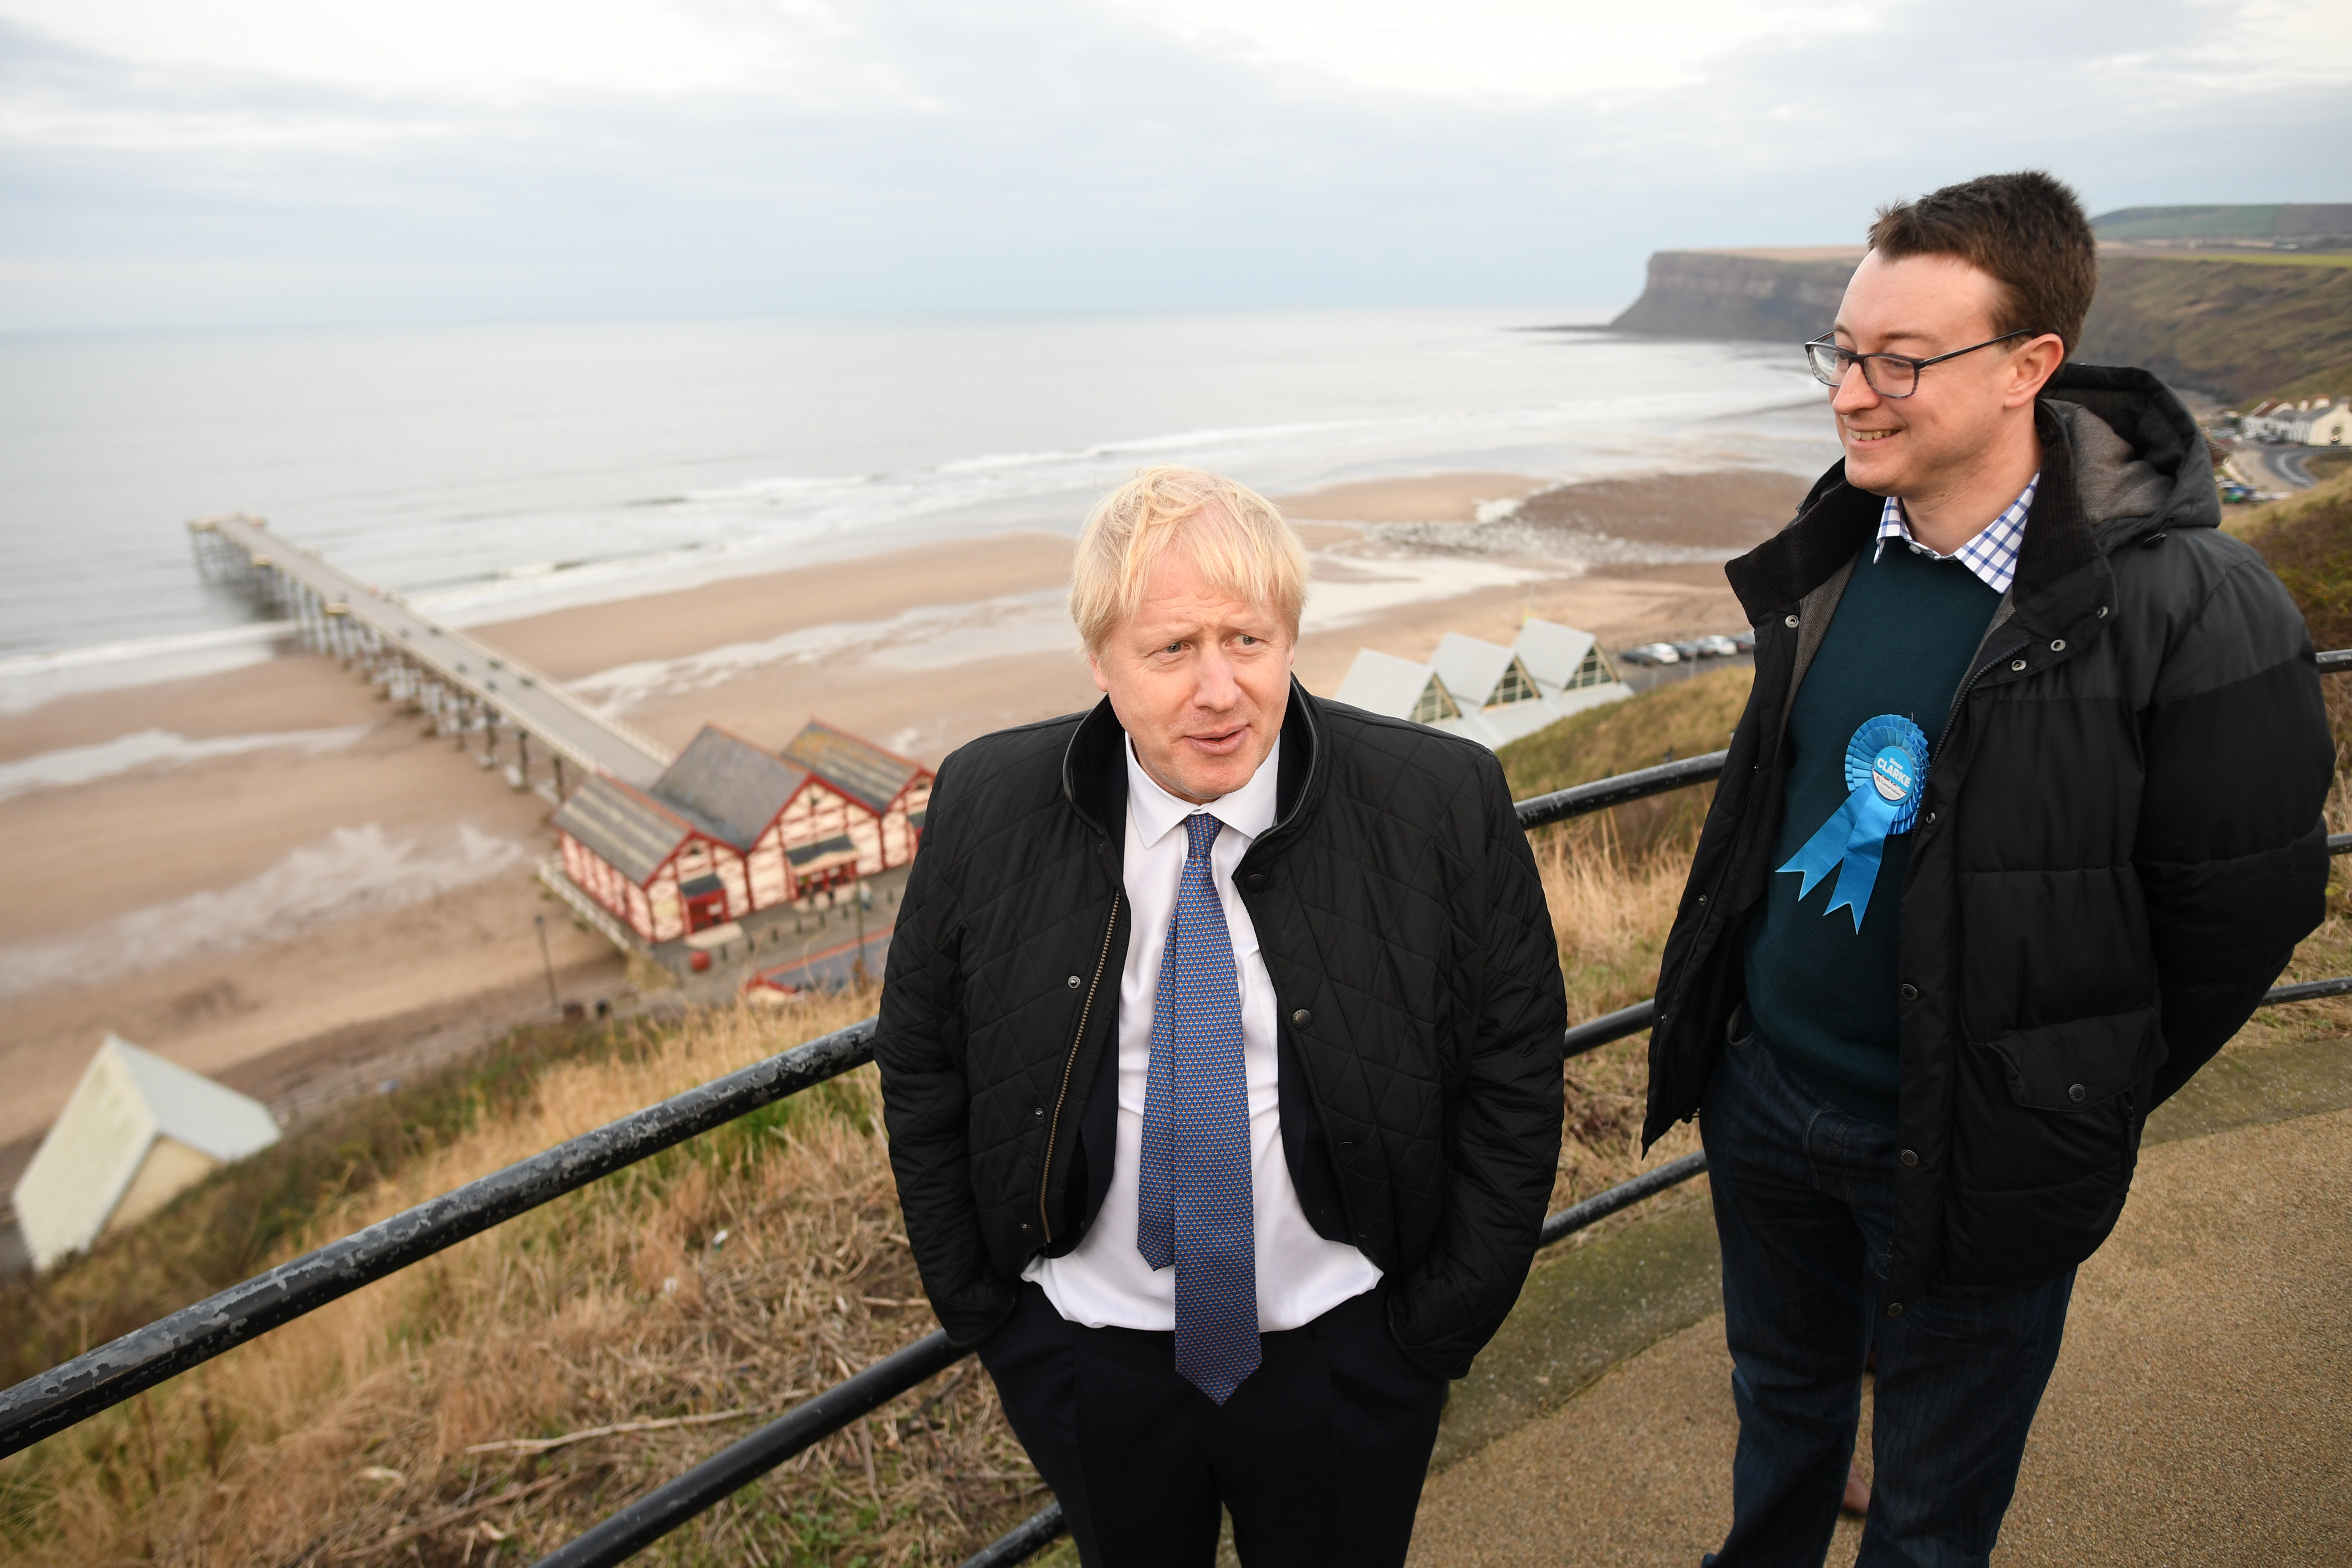 Prime Minister Boris Johnson outside the Seaview restaurant in Saltburn-by-the-Sea, with his party's candidate for Middlesbrough South and East Cleveland Simon Clarke, while on the campaign trail for the General Election.